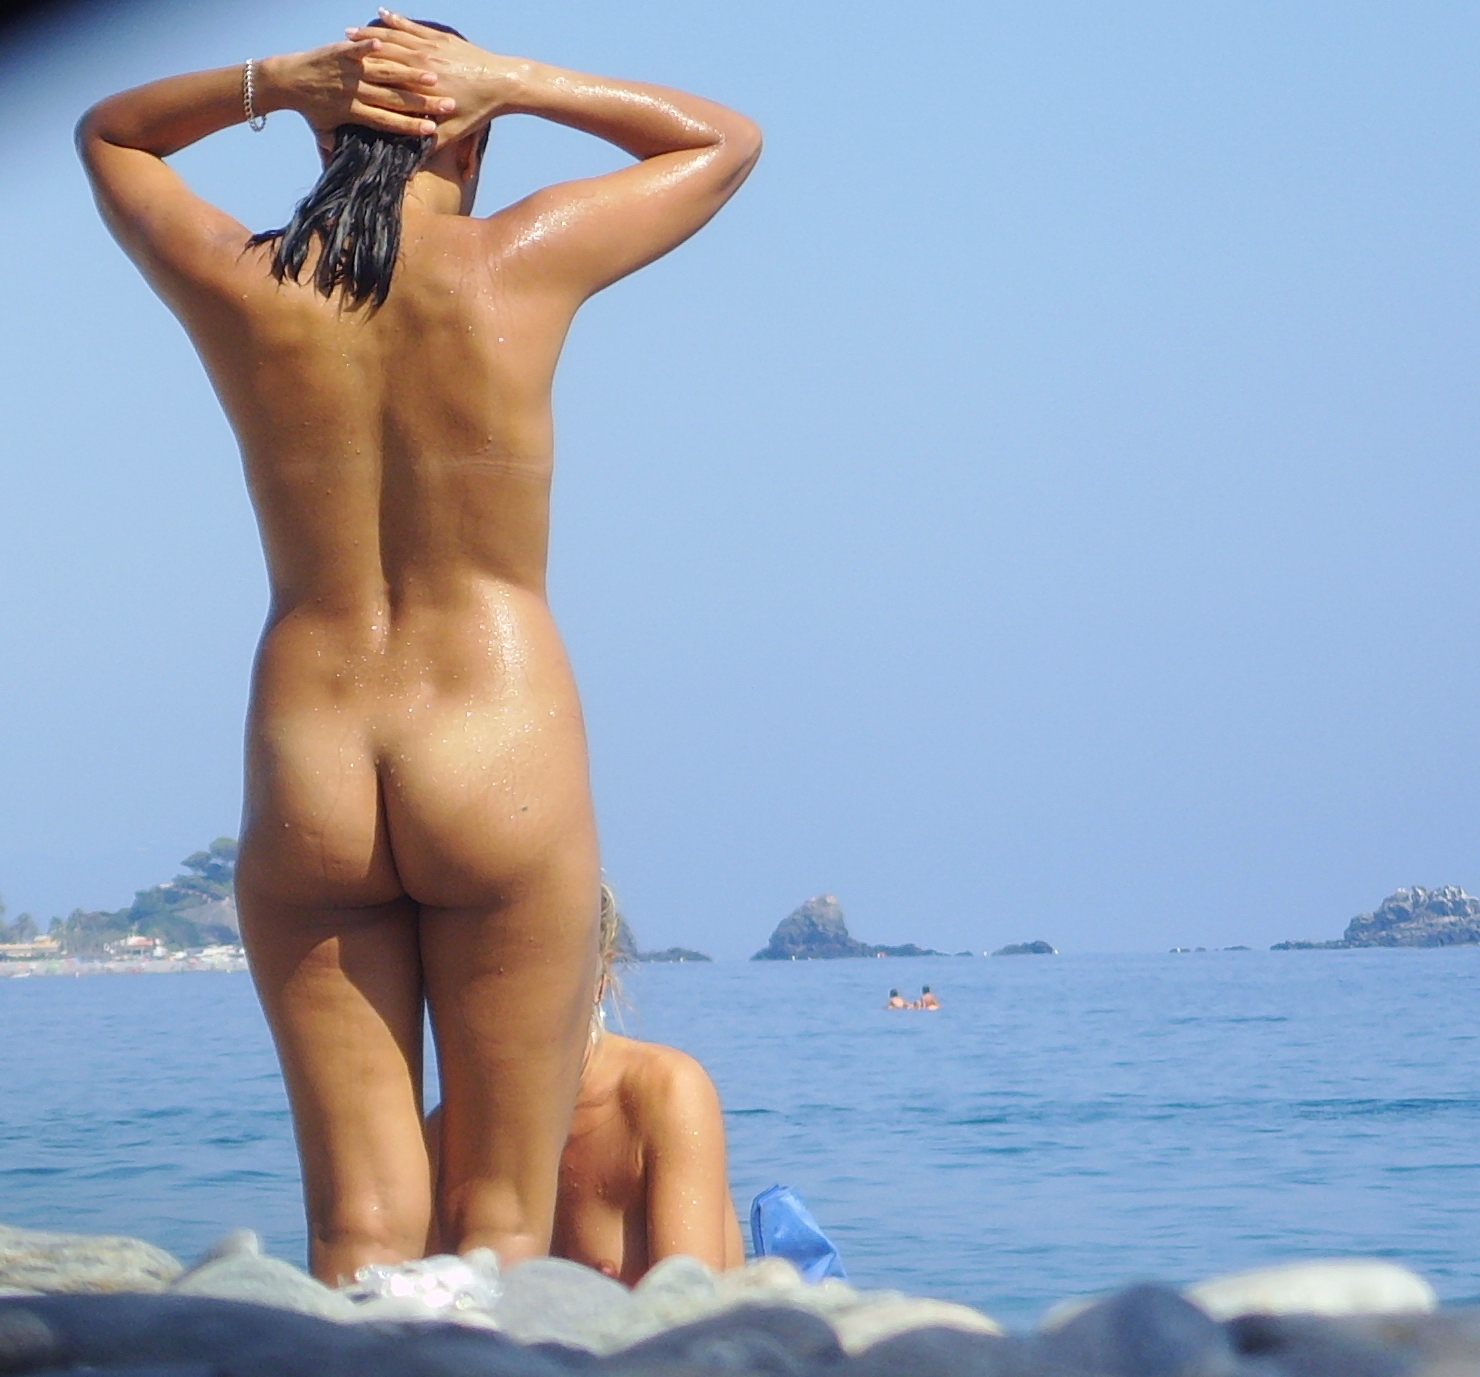 https://voyeurpapa.com/wp-content/uploads/2016/12/Nudists-family-nude-beach-55.jpg